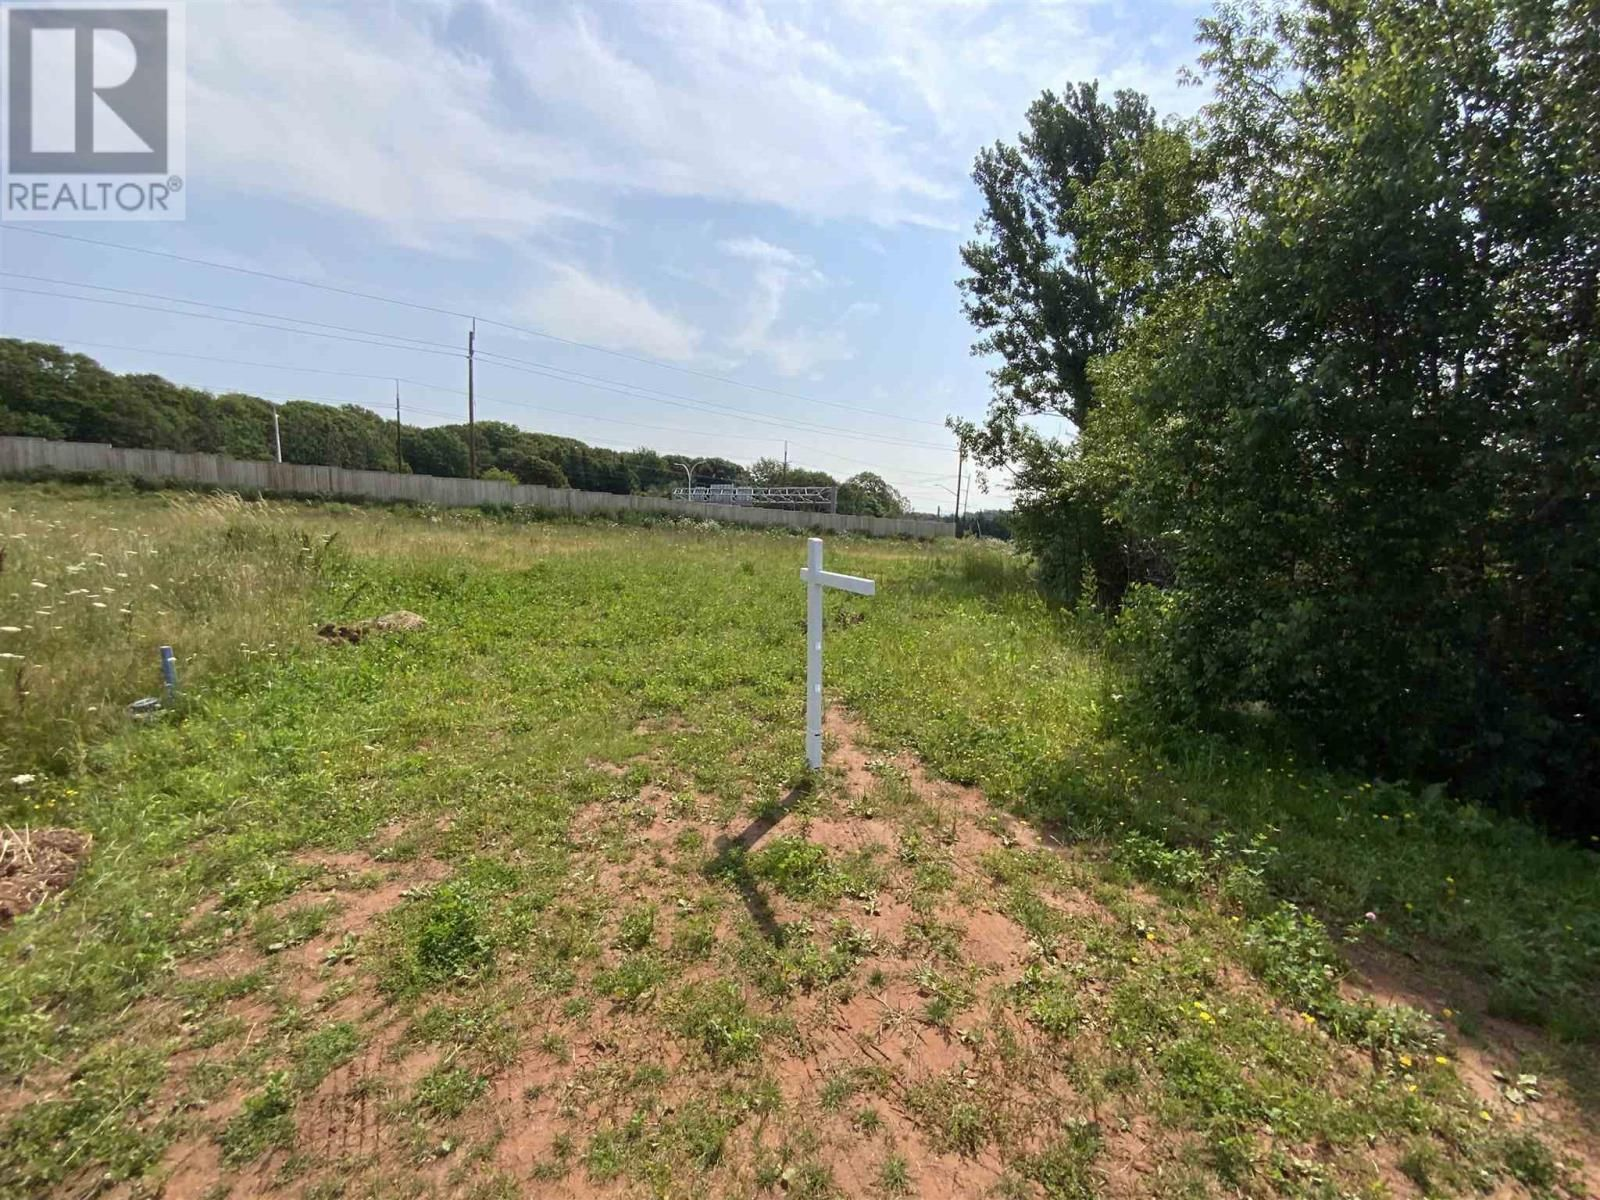 Main Photo: Lot 124 McArthur Drive in Sherwood: Vacant Land for sale : MLS®# 202120558